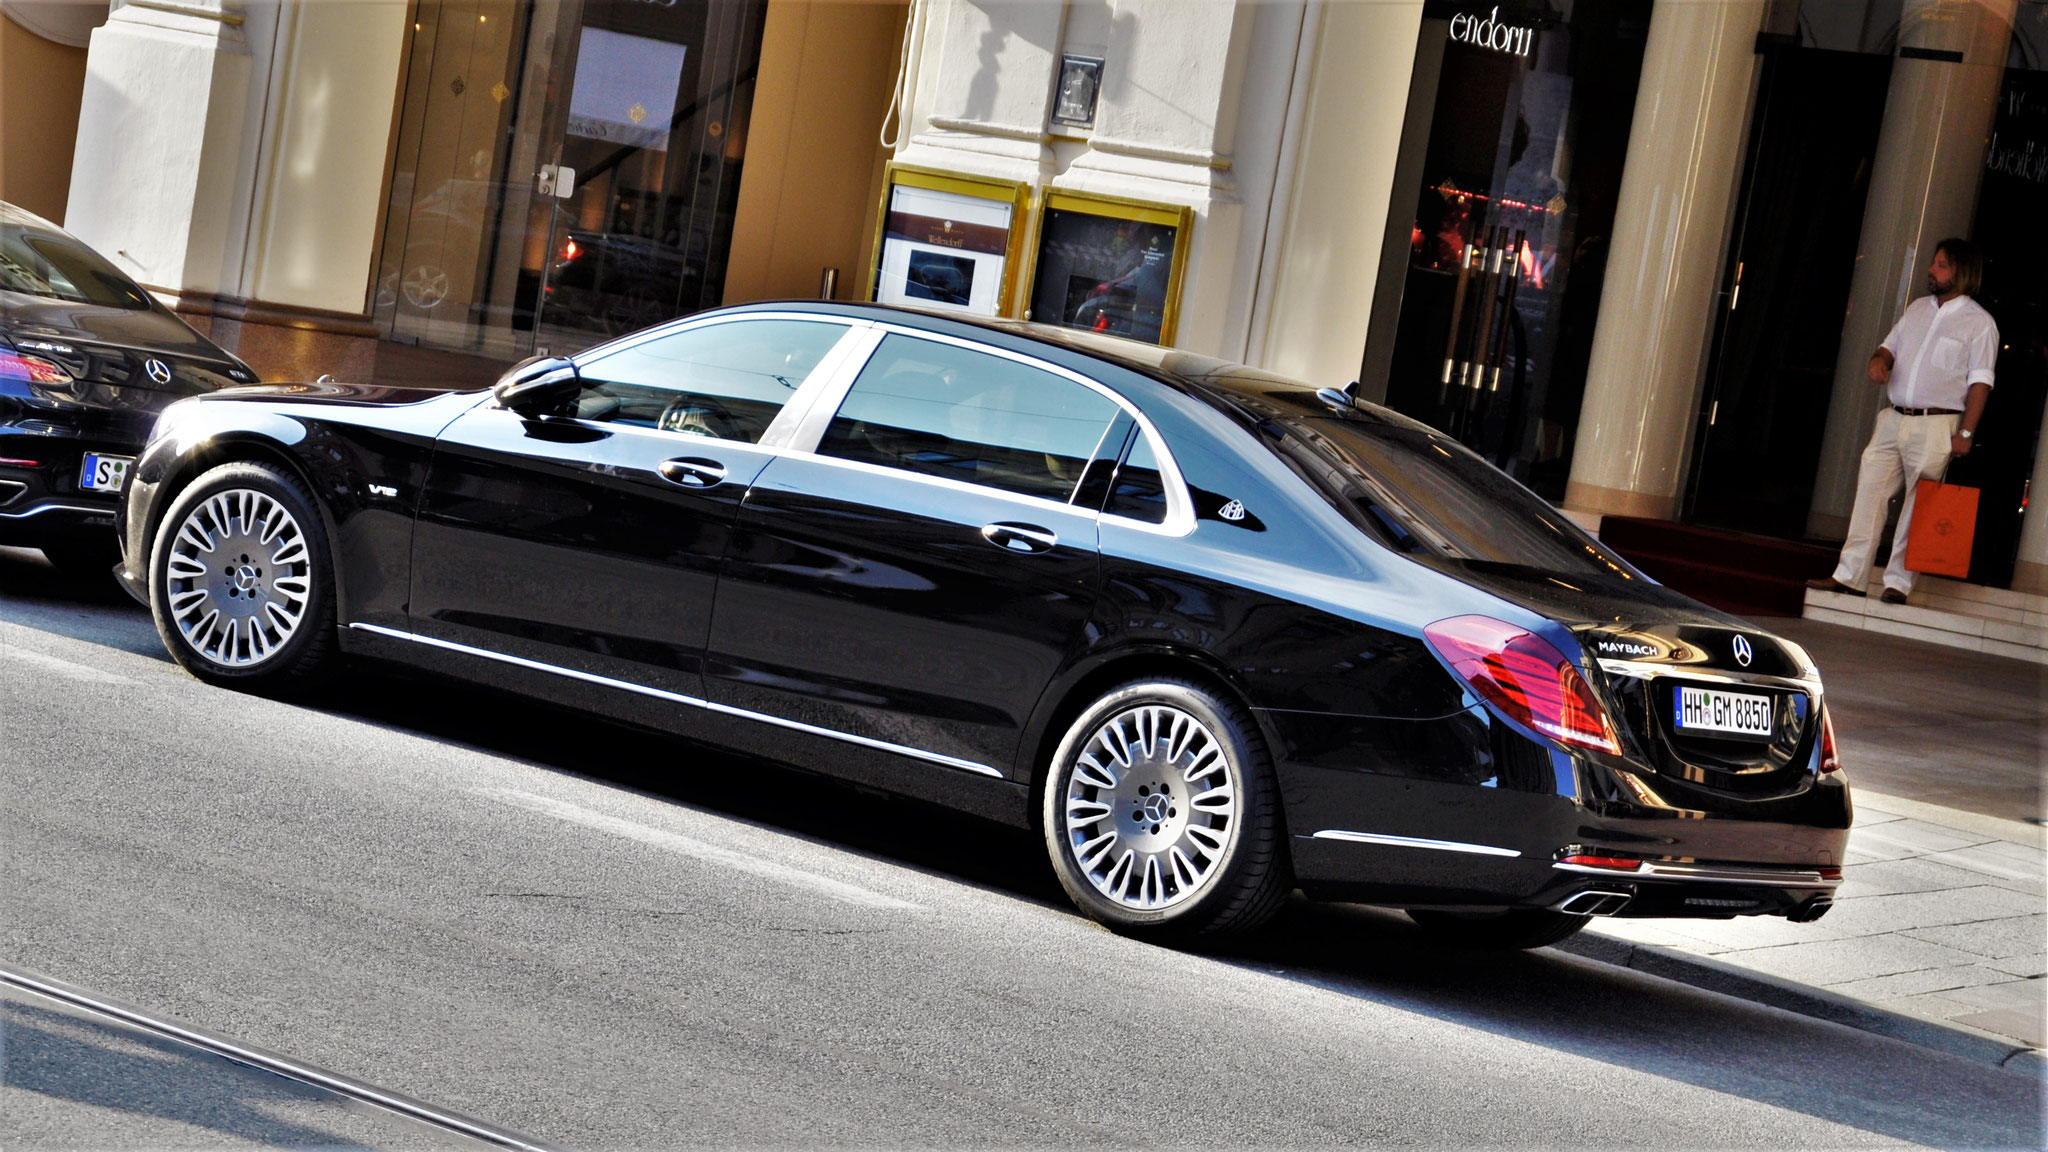 Mercedes Maybach S600 - HH-GM-8850